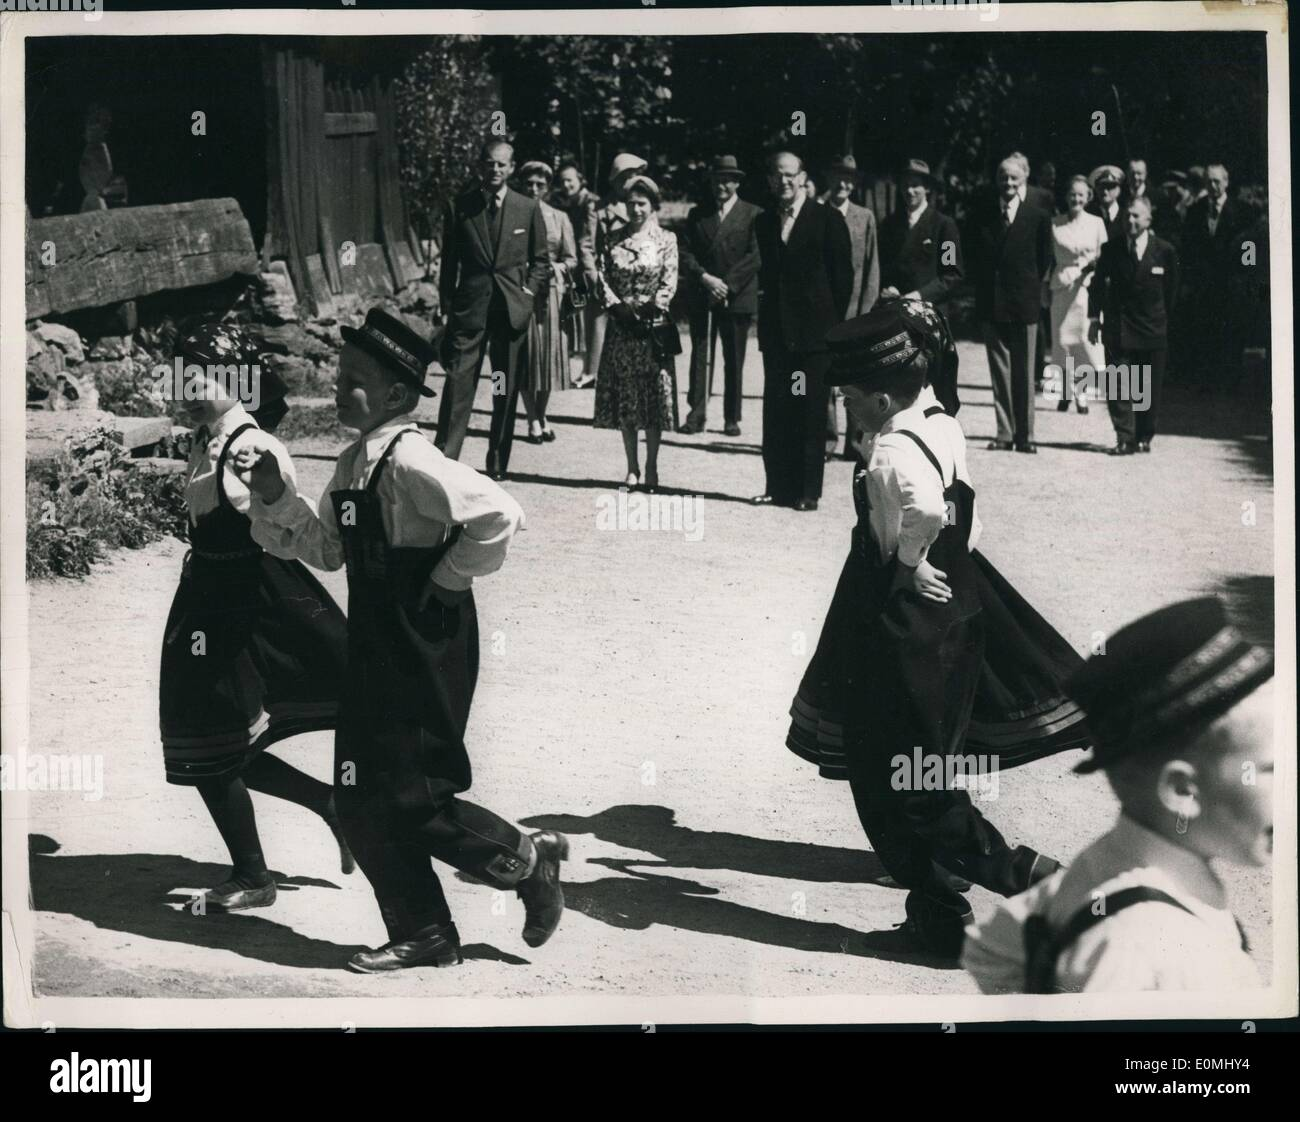 Jun. 06, 1955 - Queen And Duke On Visit To Norway. At The Folk Museum: H.M. The Queen and the Duke Of Edinburgh Stock Photo